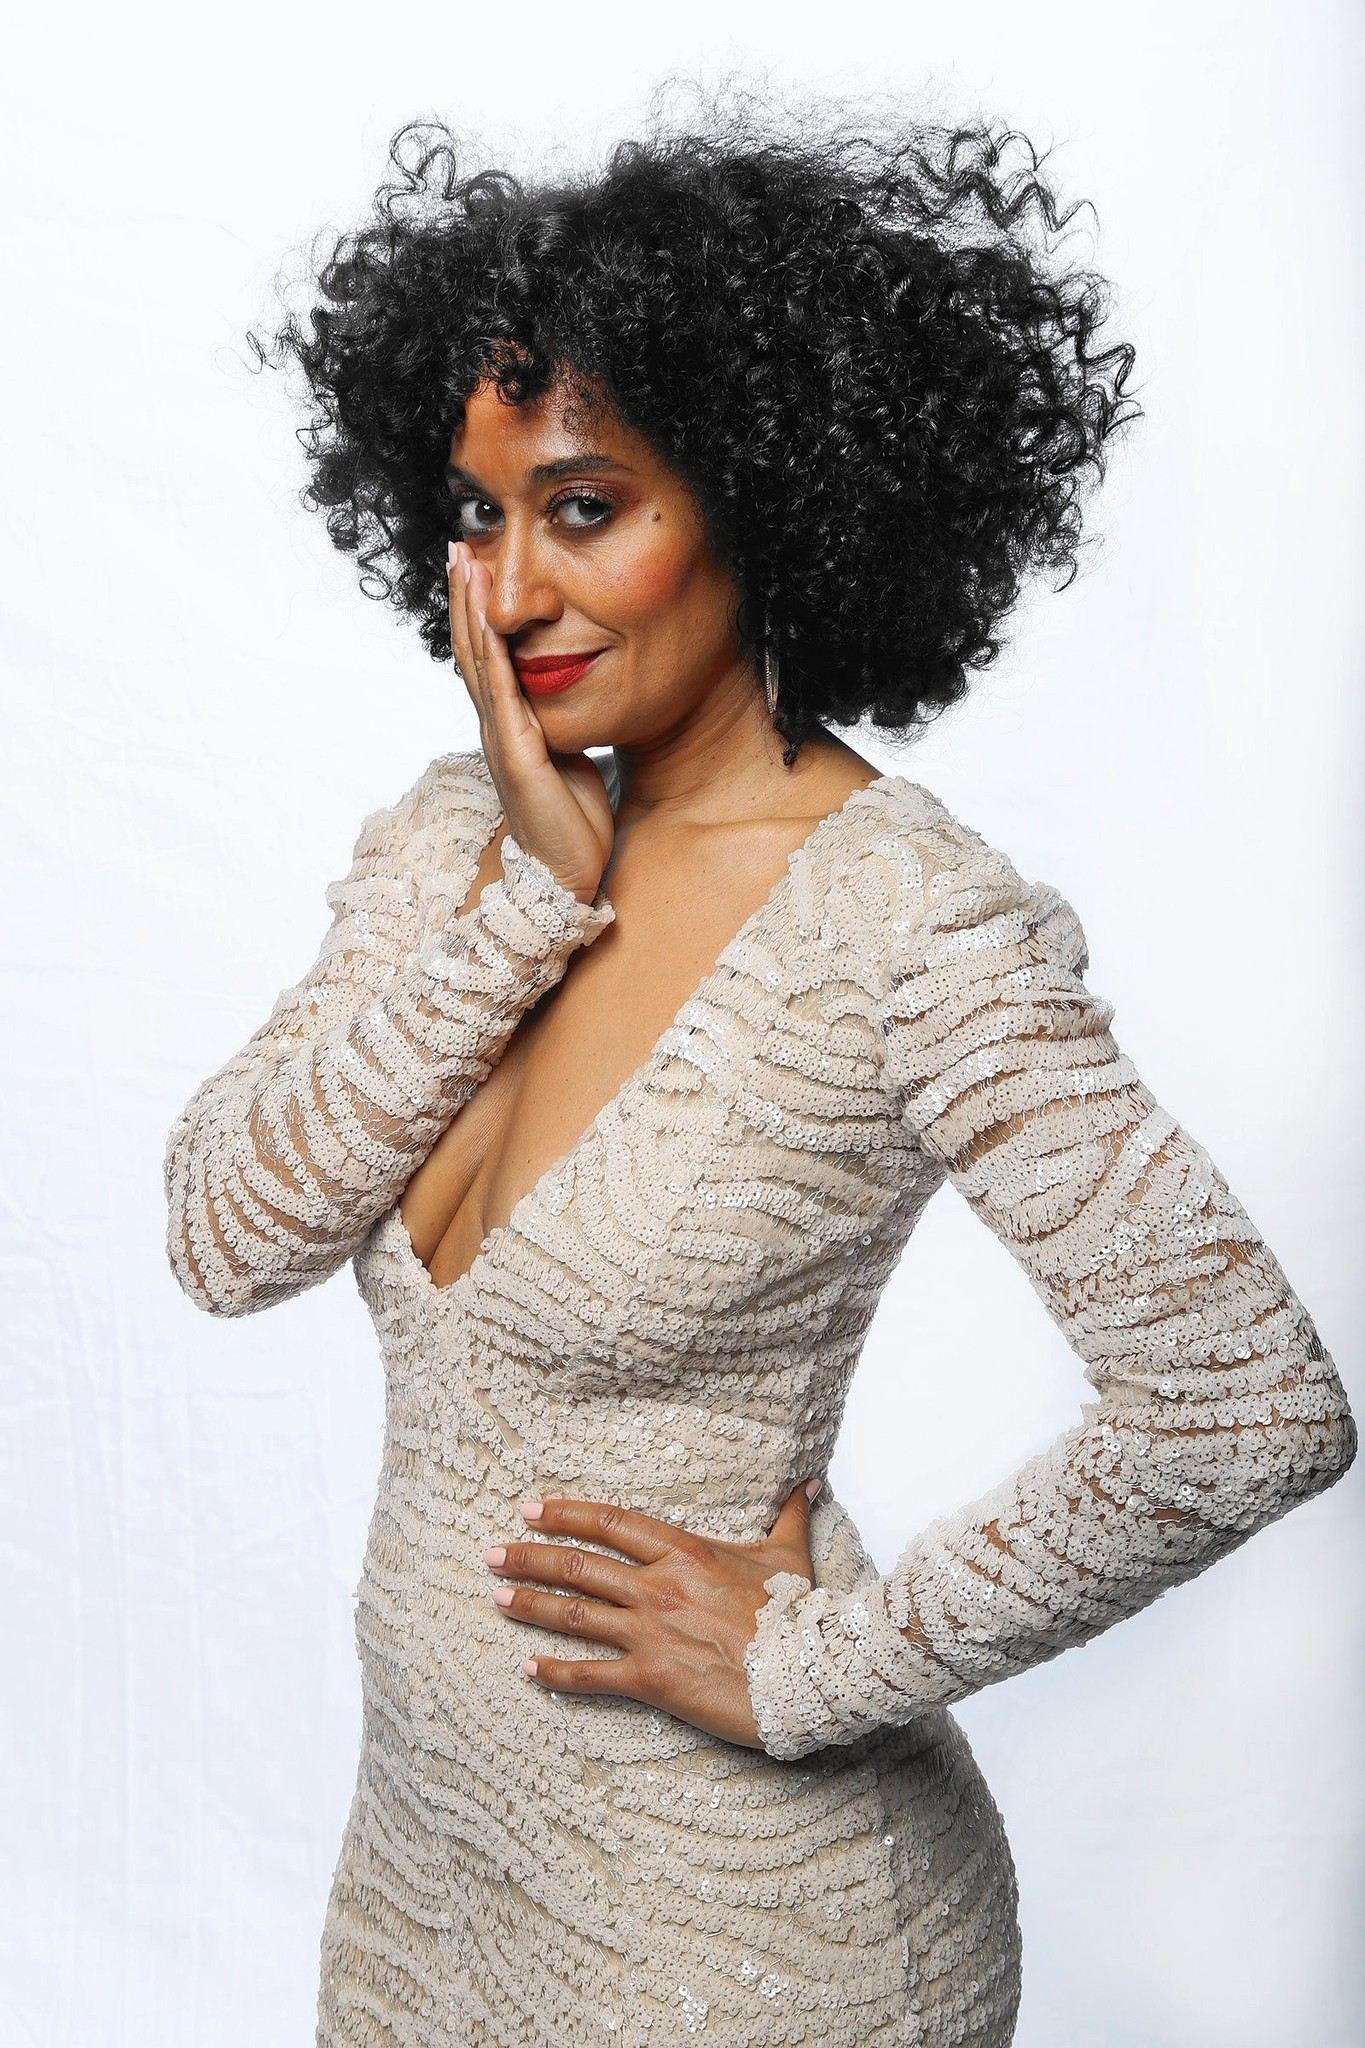 tracee ellis ross zimbiotracee ellis ross – black-ish, tracee ellis ross young, tracee ellis ross wiki, tracee ellis ross getty images, tracee ellis ross zimbio, tracee ellis ross dancing, tracee ellis ross parents, tracee ellis ross instagram, tracee ellis ross husband, tracee ellis ross golden globes, tracee ellis ross salary, tracee ellis ross siblings, tracee ellis ross father